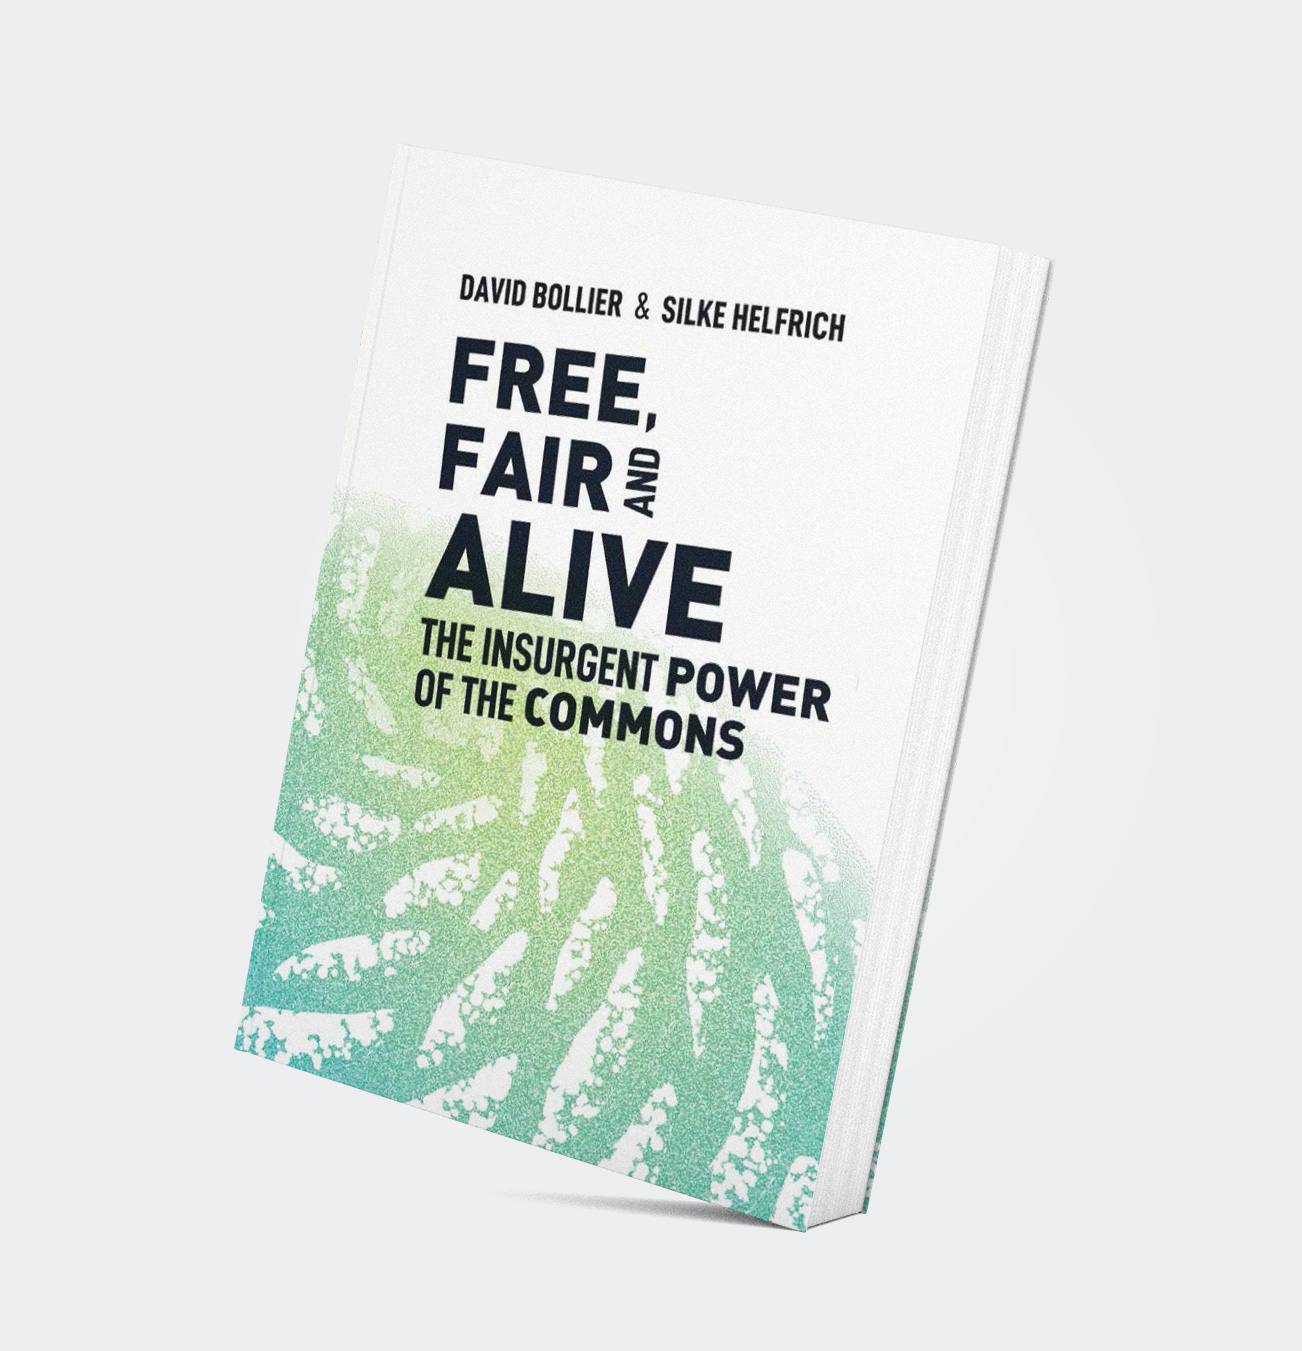 Free, Fair & Alive' book